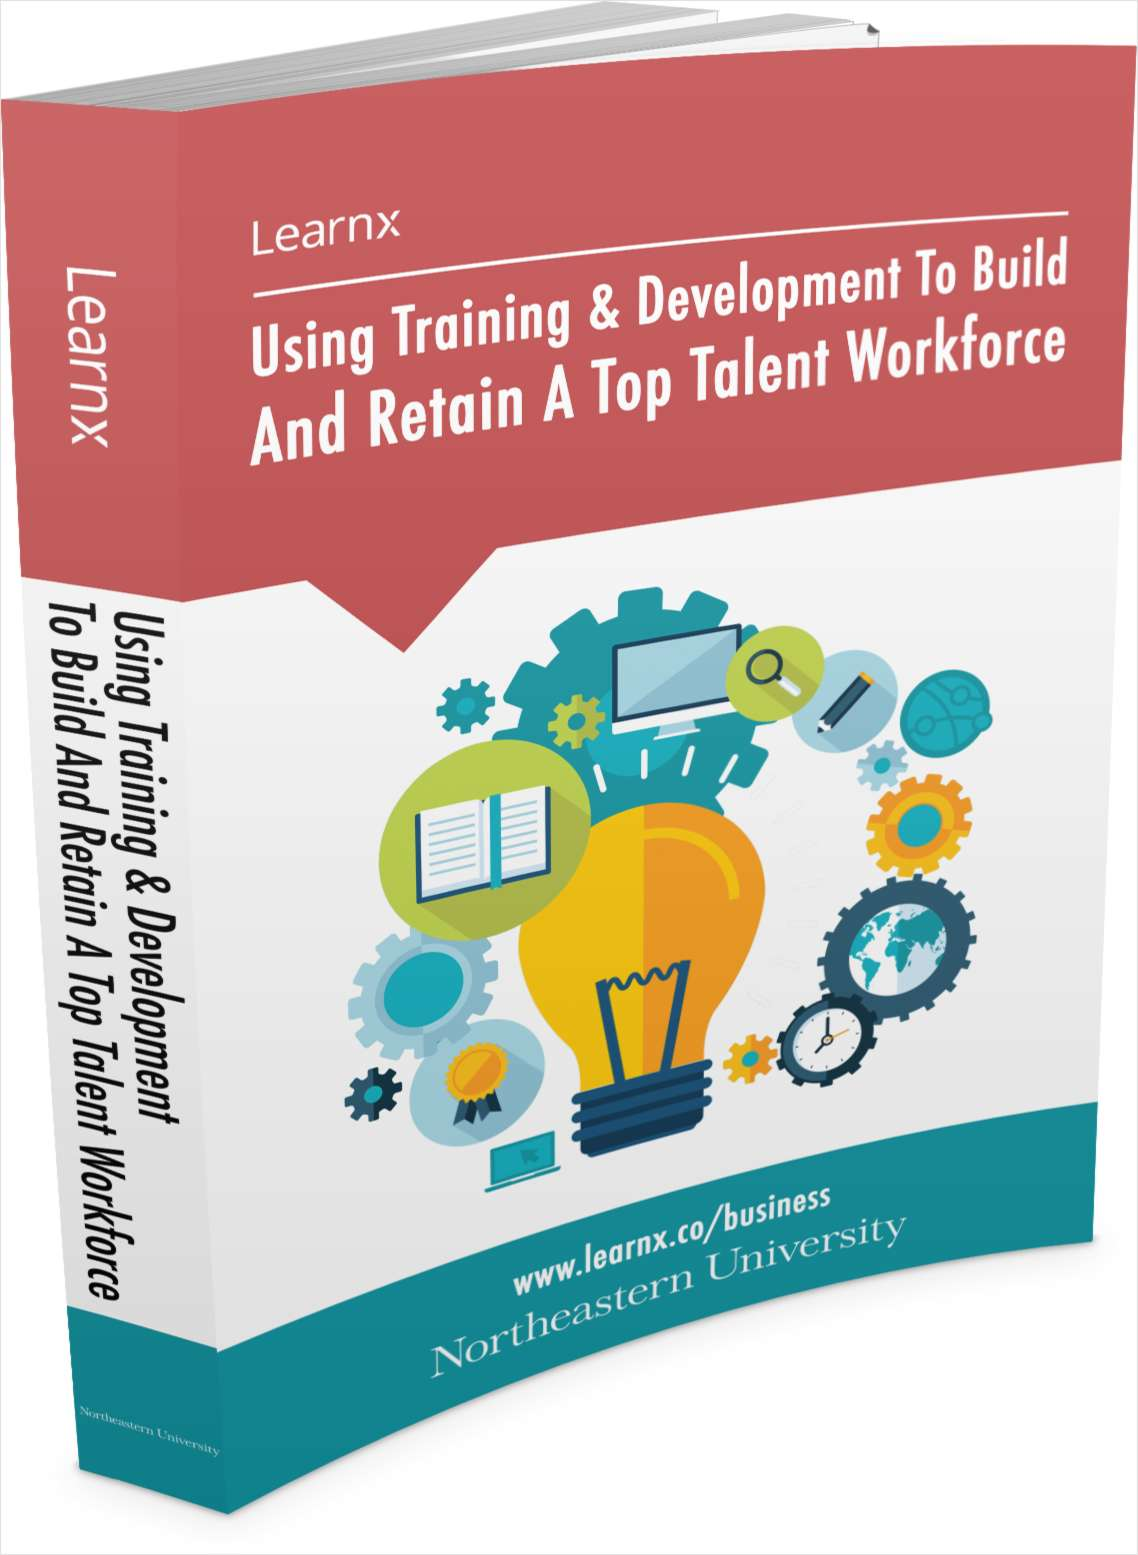 Using Training & Development To Build And Retain A Top Talent Workforce